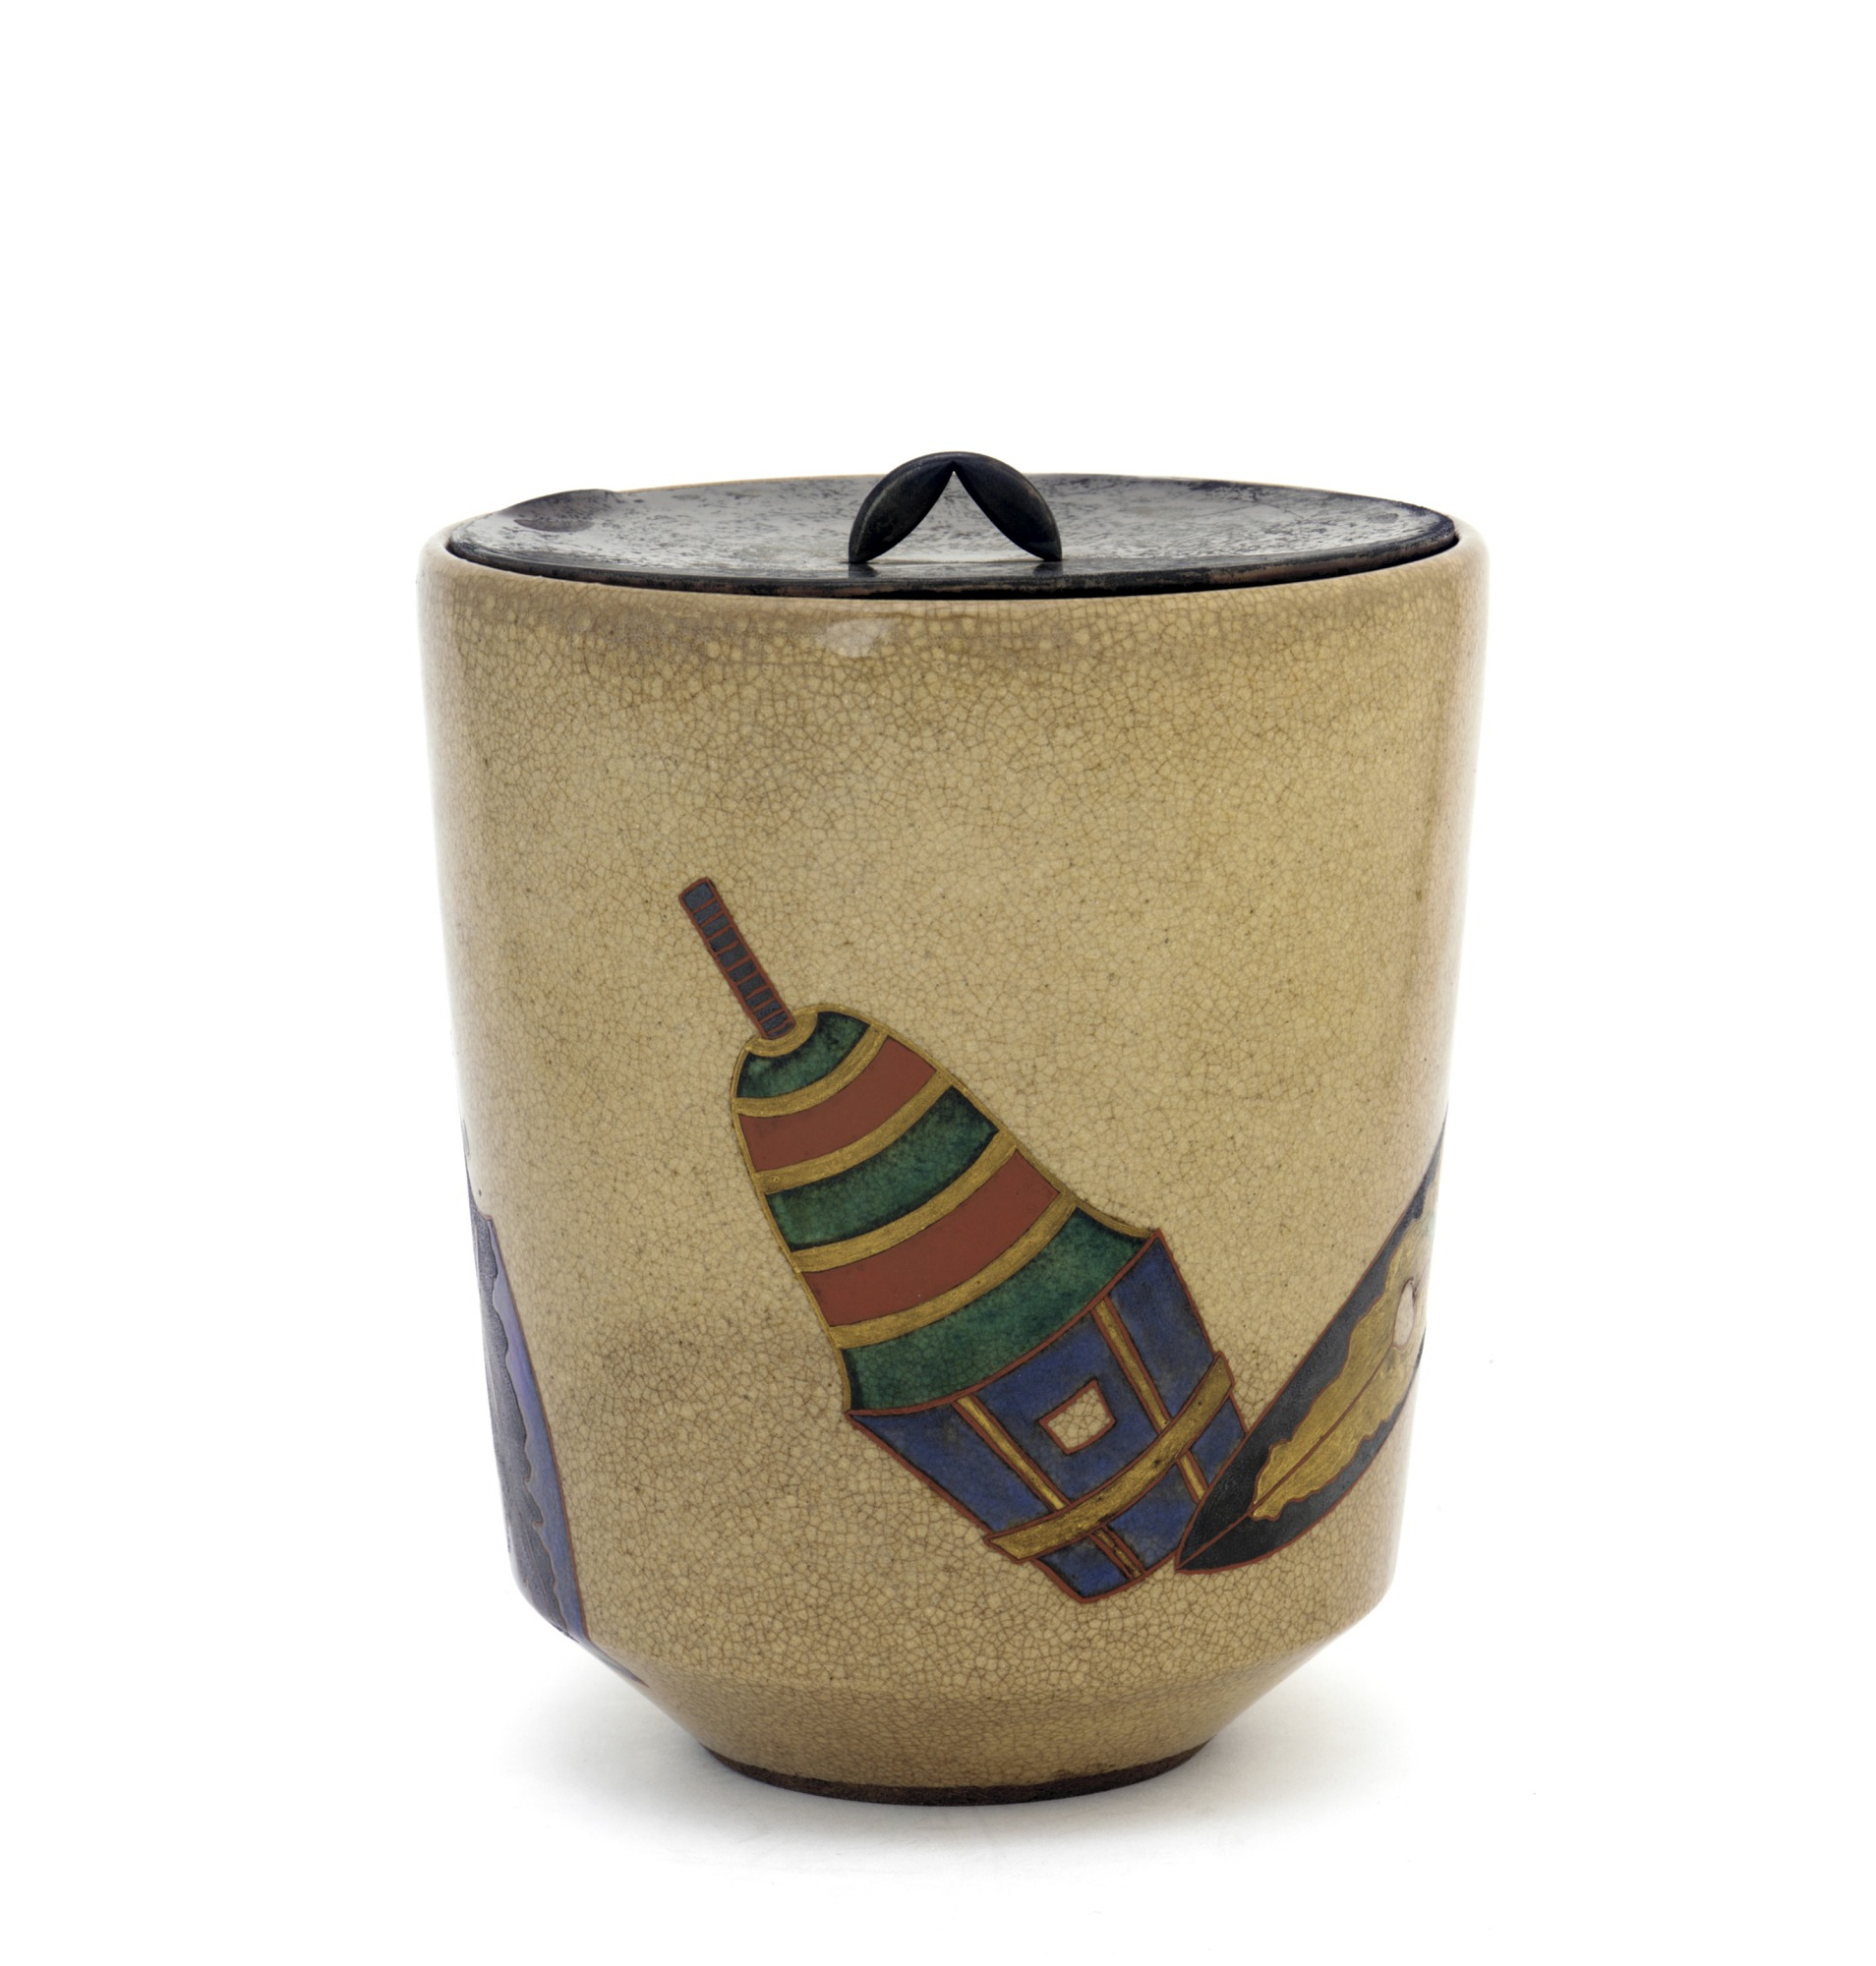 Tea ceremony water jar with design of Gion Festival halberds